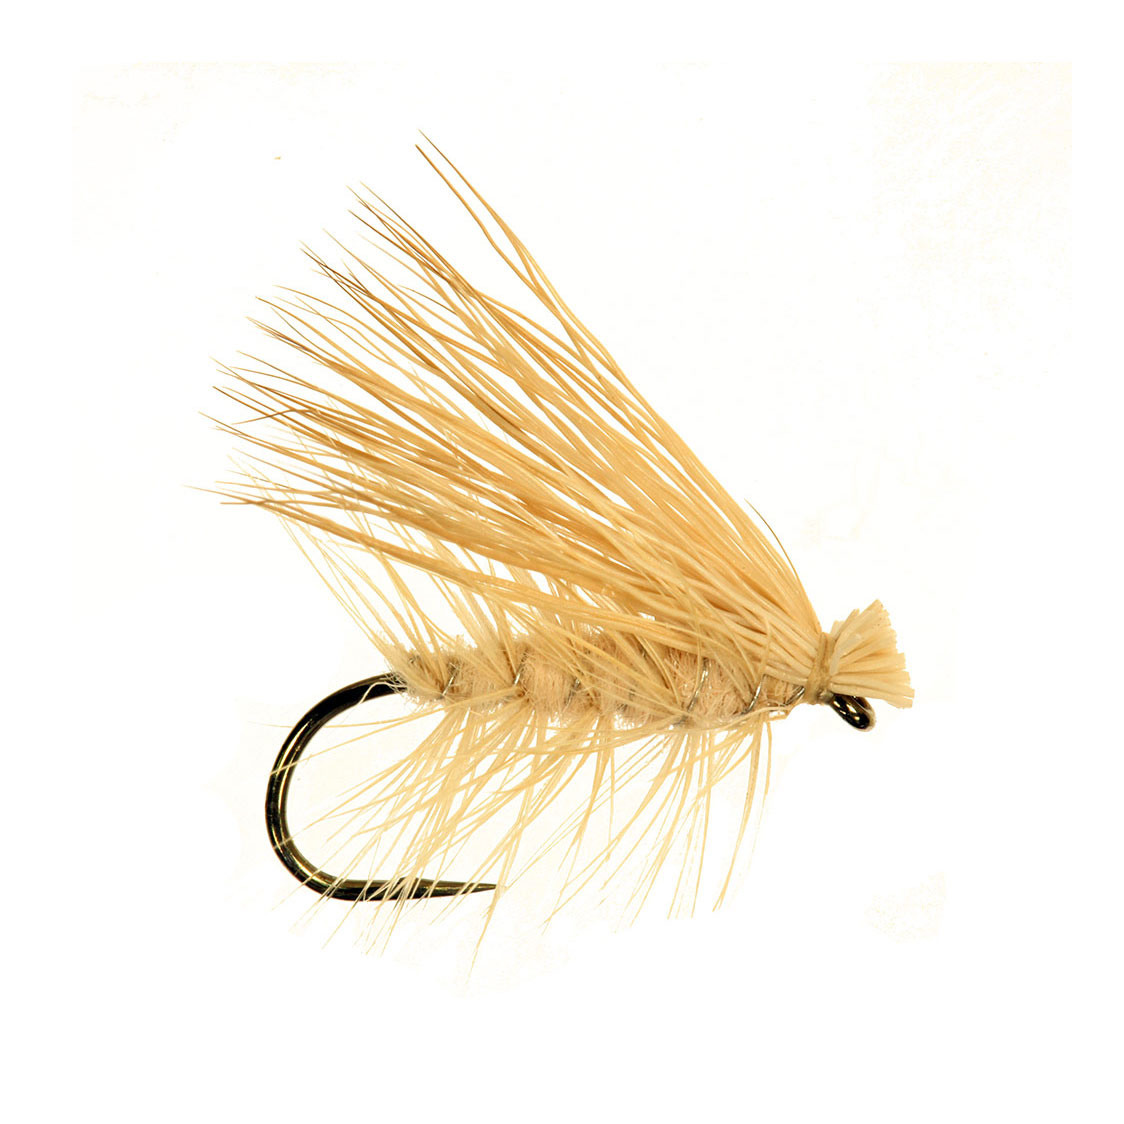 Aquatic Moth Dry Fly, picture